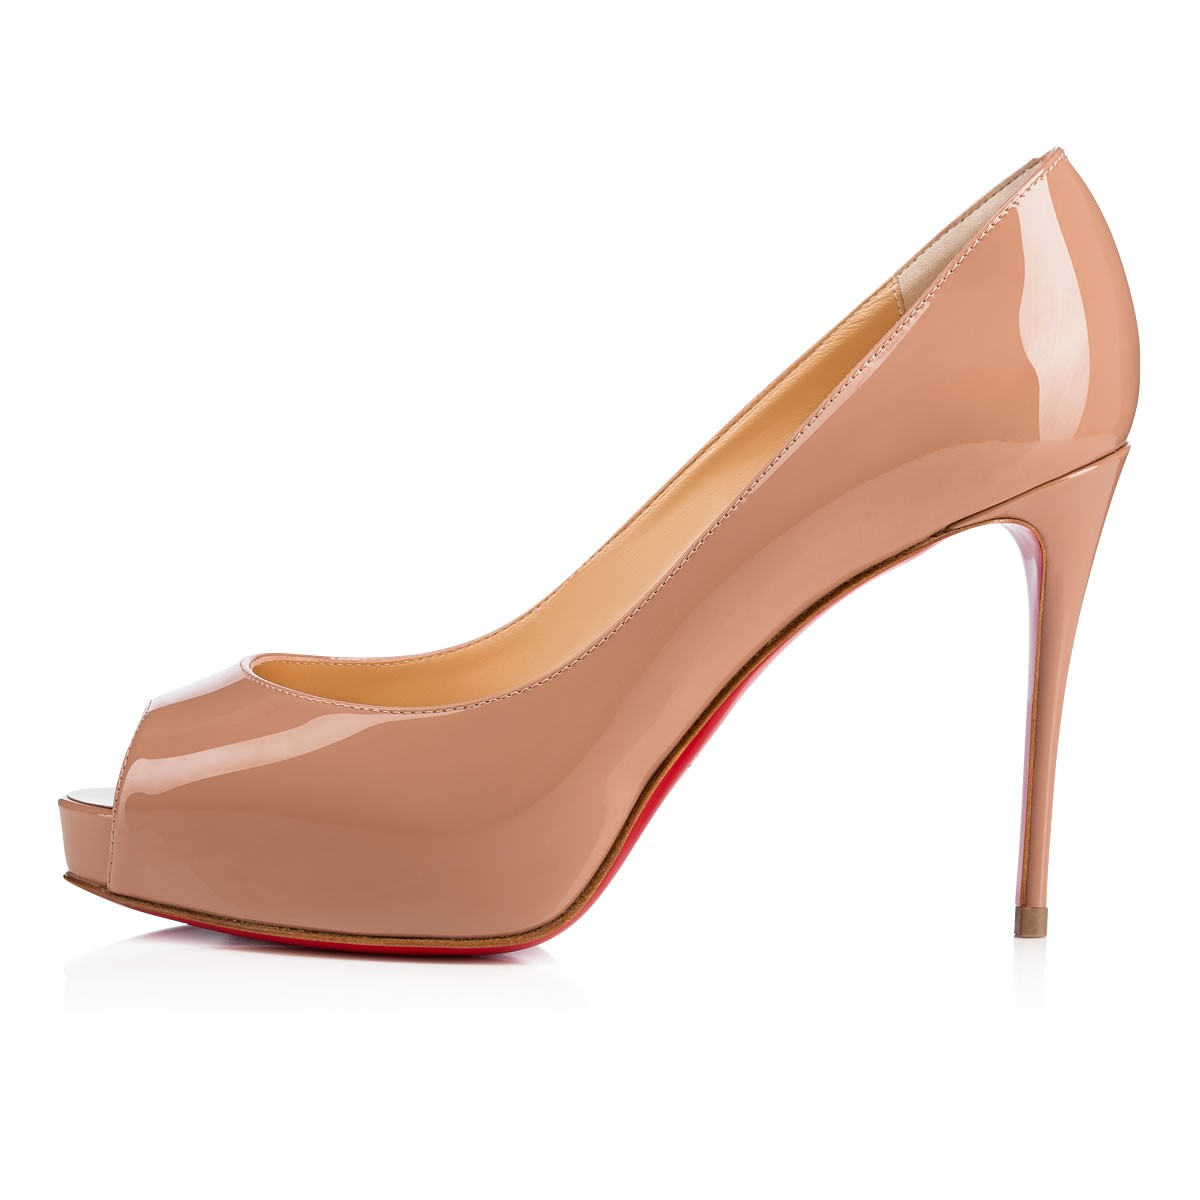 Souliers - New Very Prive - Christian Louboutin